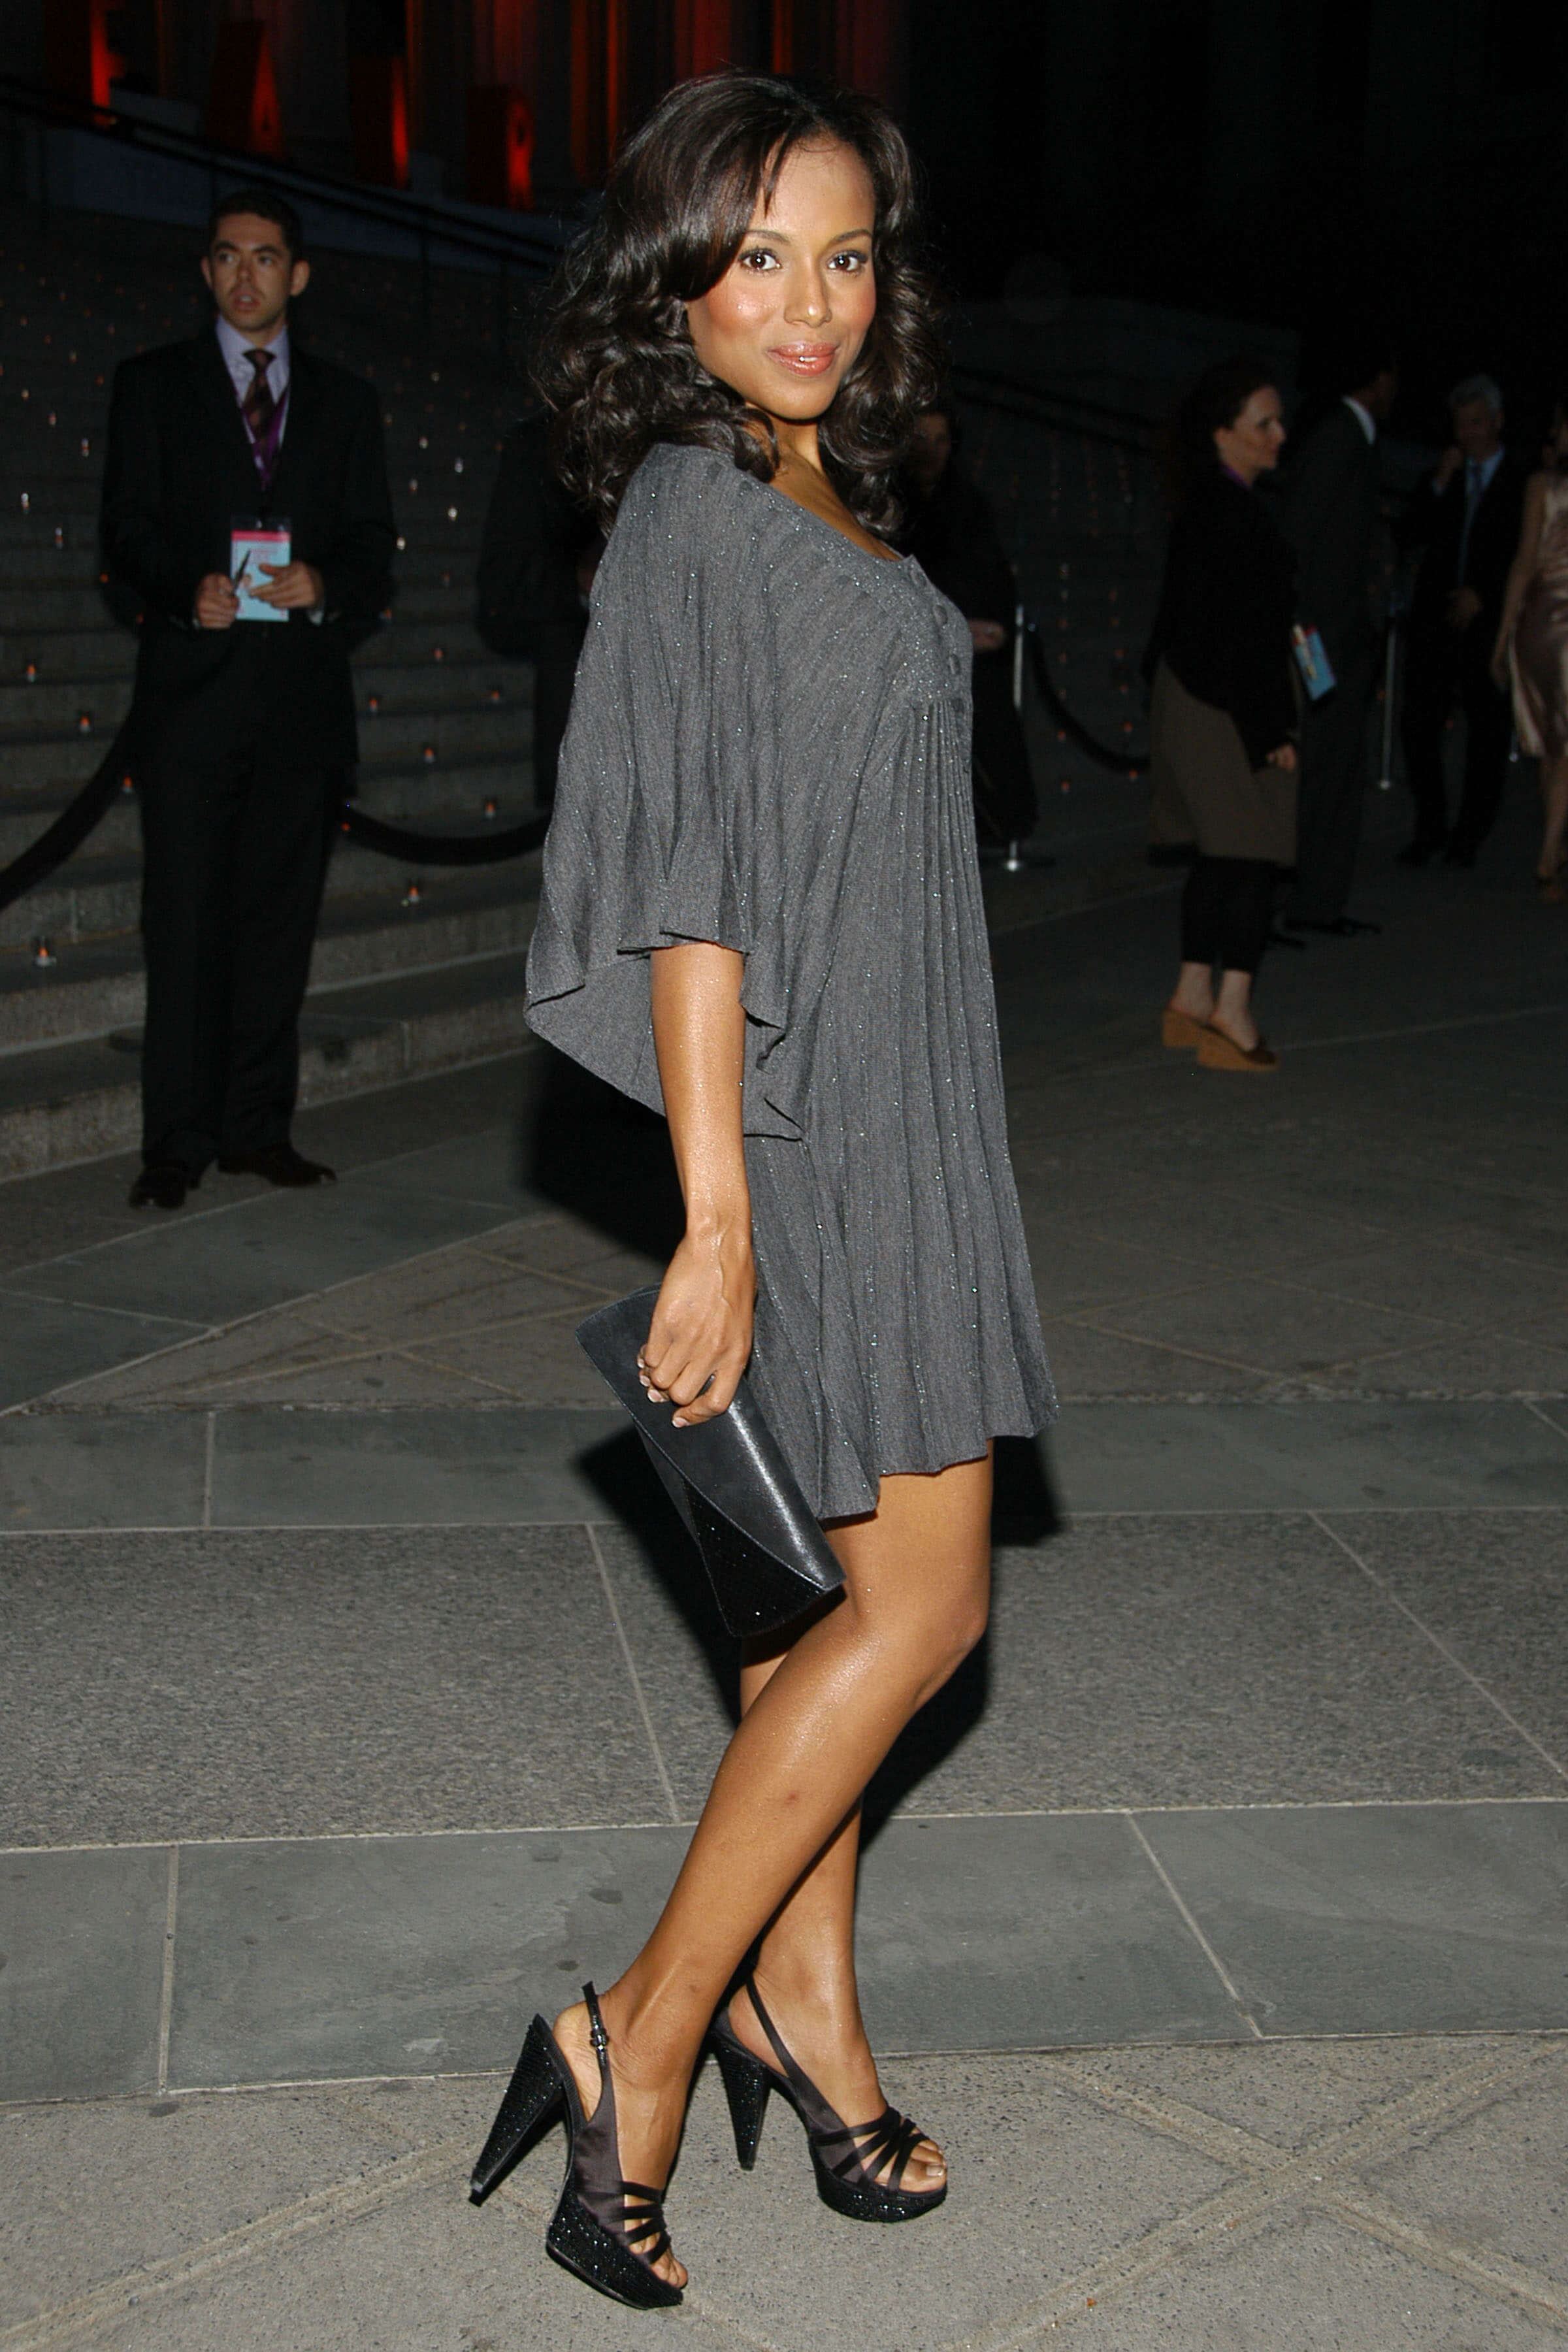 49 Hottest Kerry Washington Big Butt Pictures Will Motivate You To Win Her Over | Best Of Comic ...